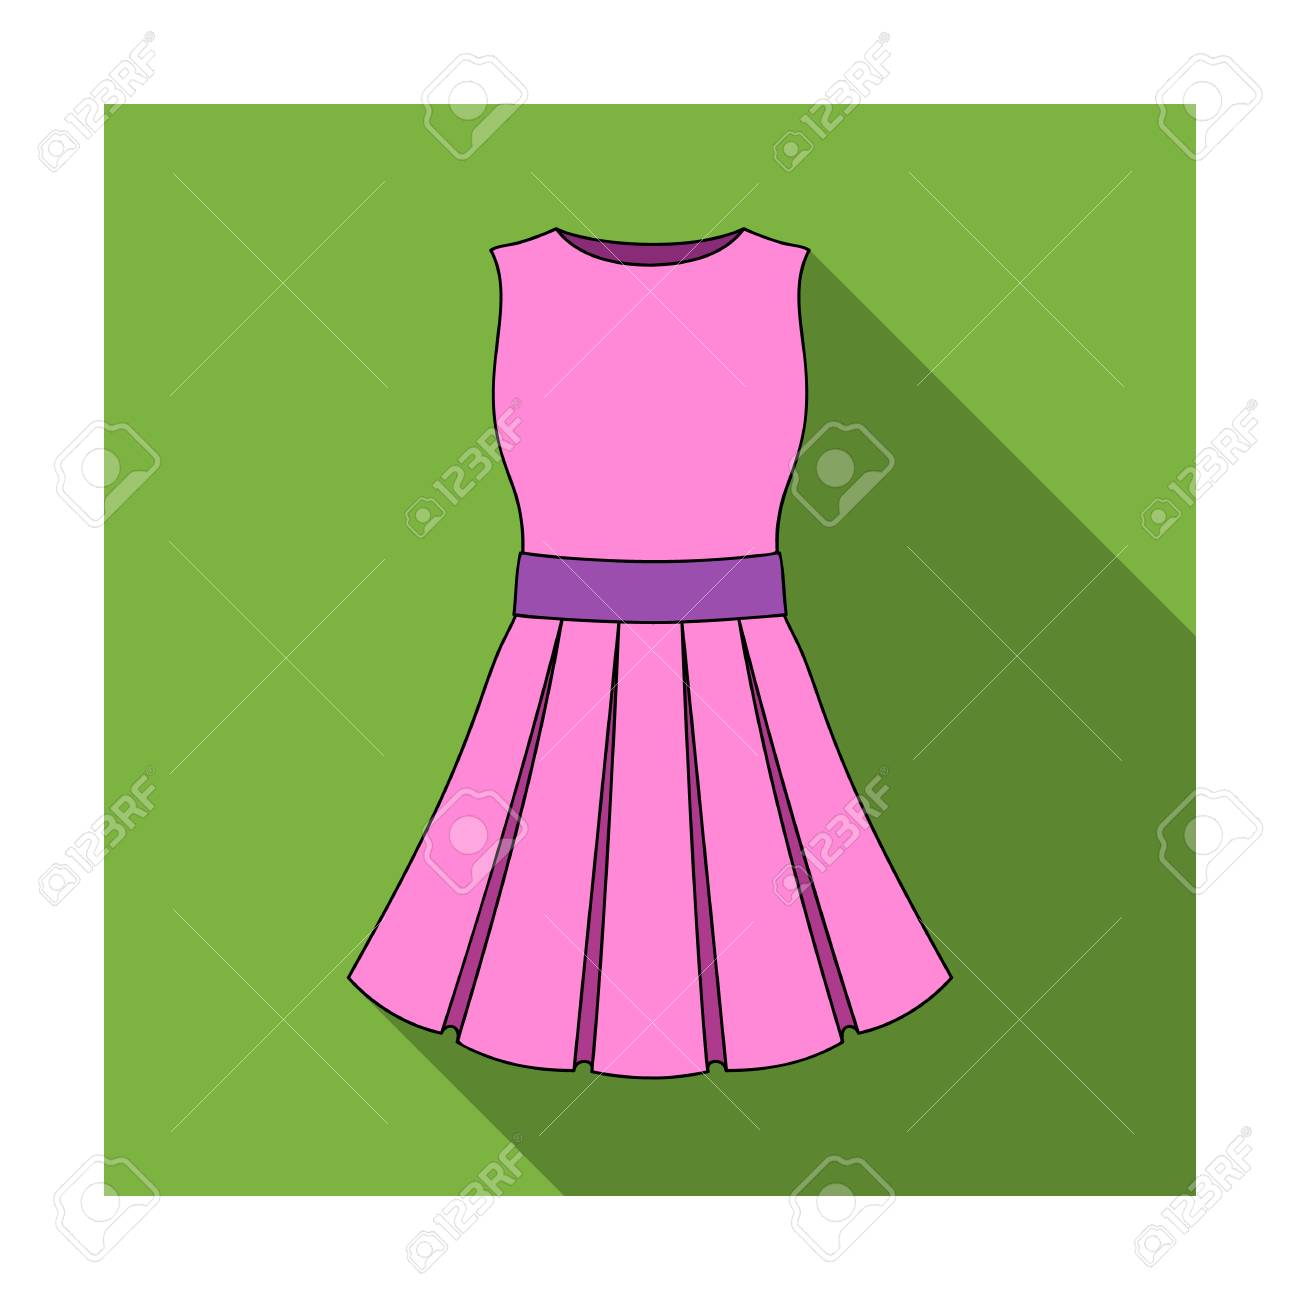 7f8dee5ee85 Beautiful light pink summer dress without sleeves. Clothing for a hike to  the beach.